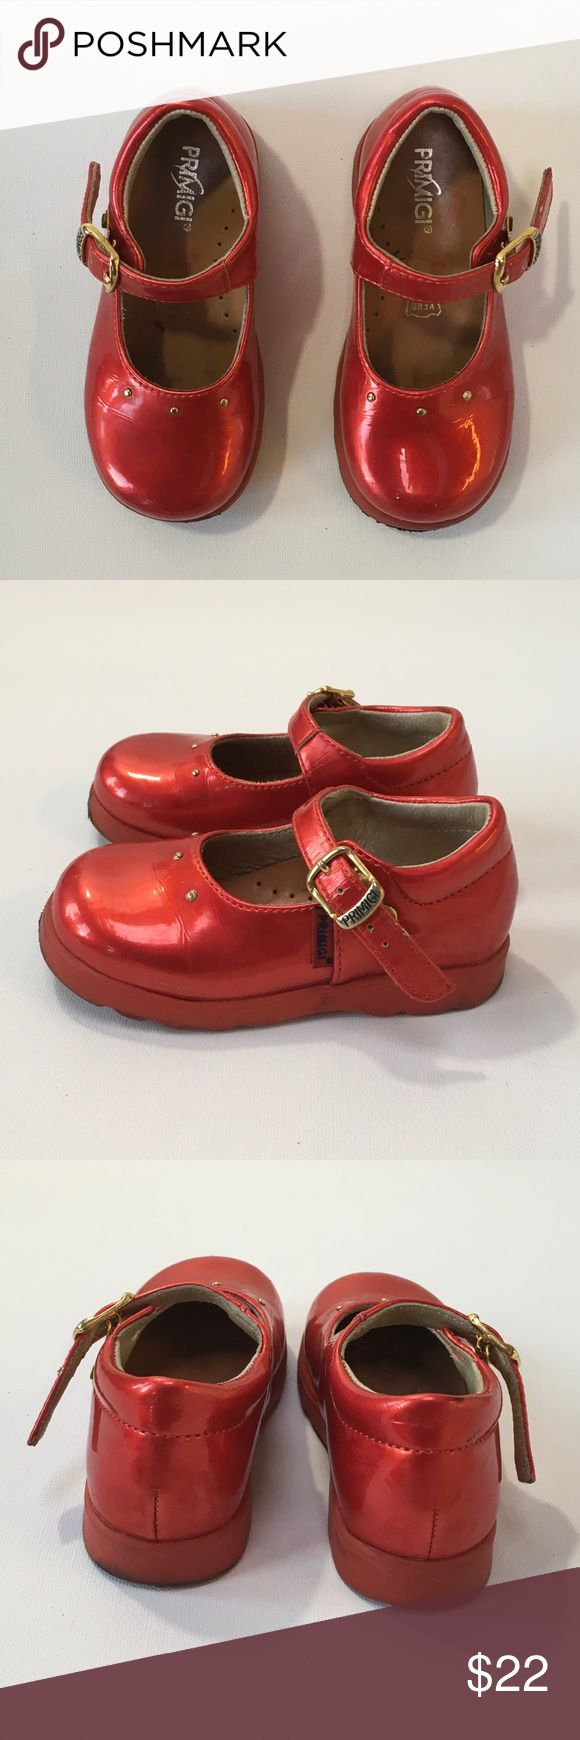 Primigi Red Patent Mary Janes 23 (US 6.5) Shiny red patent mary janes by Primigi. Size 23 approximately 6.5 toddler US (see size chart). Gold tone buckles. Some signs of wear, but tons of life left in these beauties! Primigi Shoes Dress Shoes